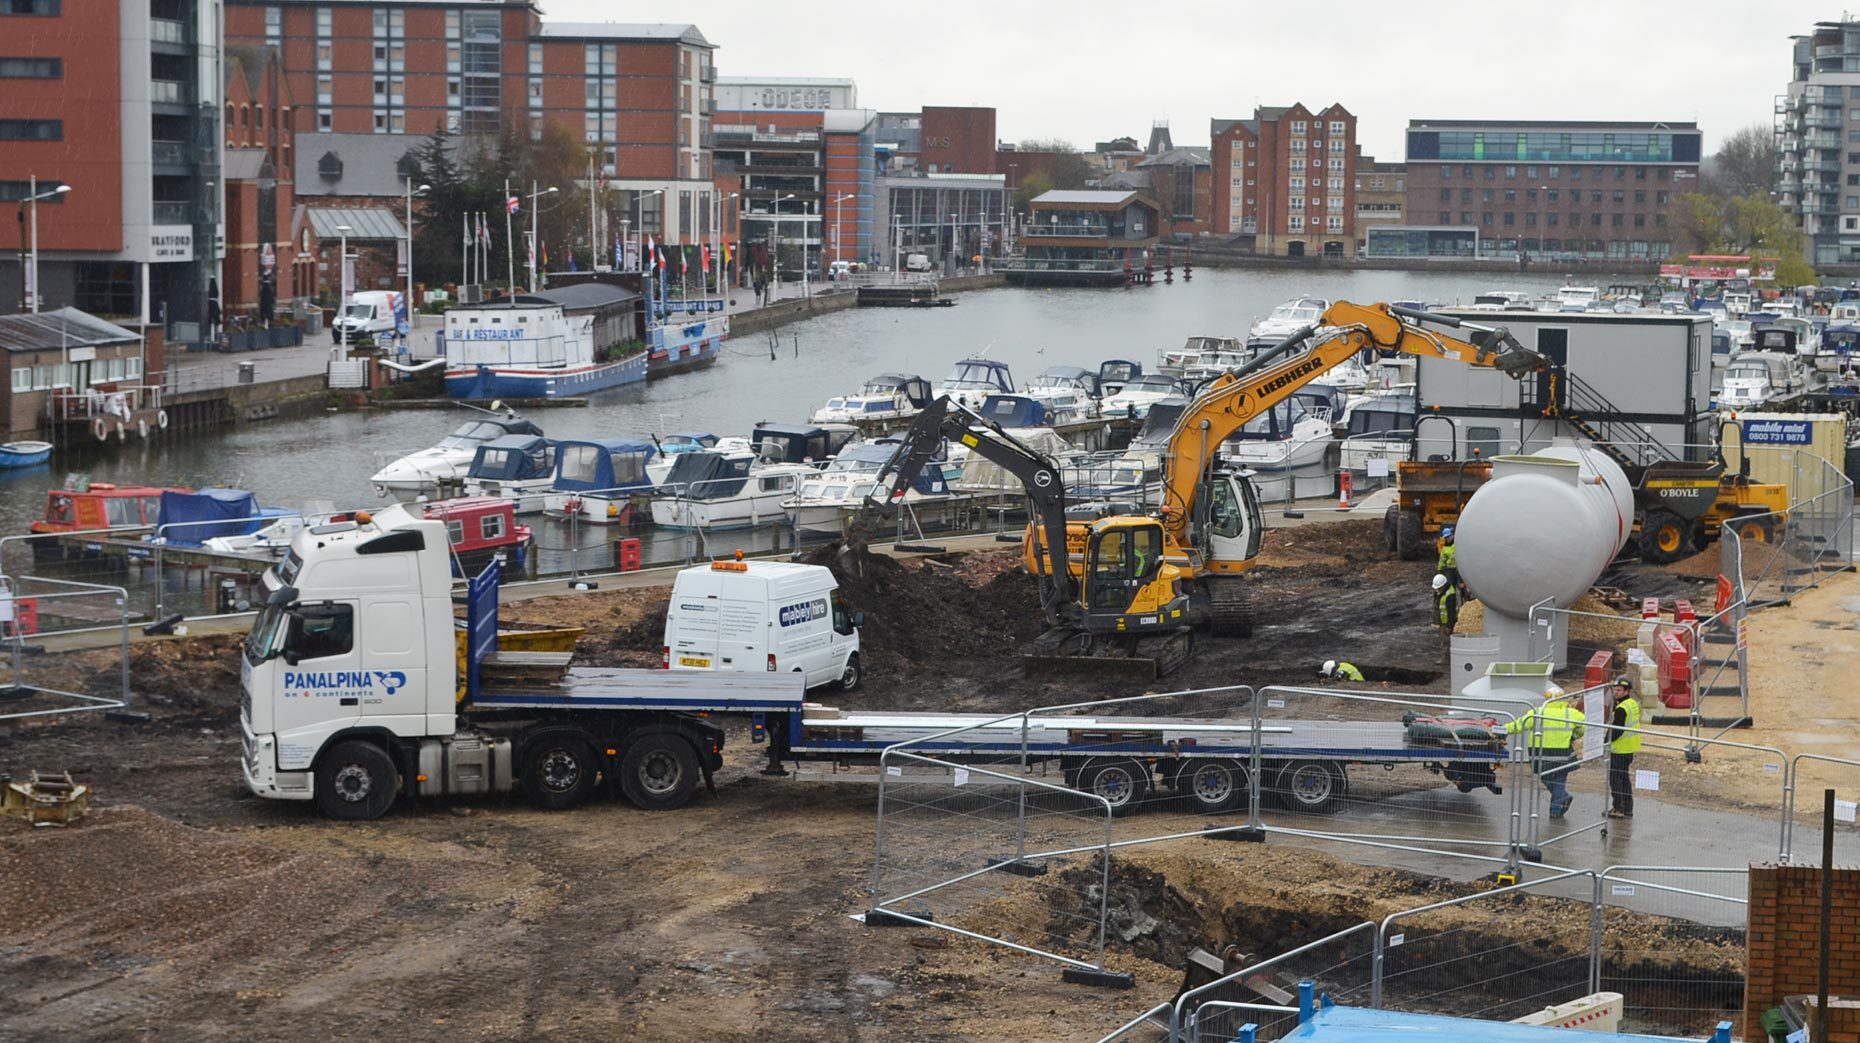 Clearing the site for the proposed new development. Photo: Emily Norton for The Lincolnite